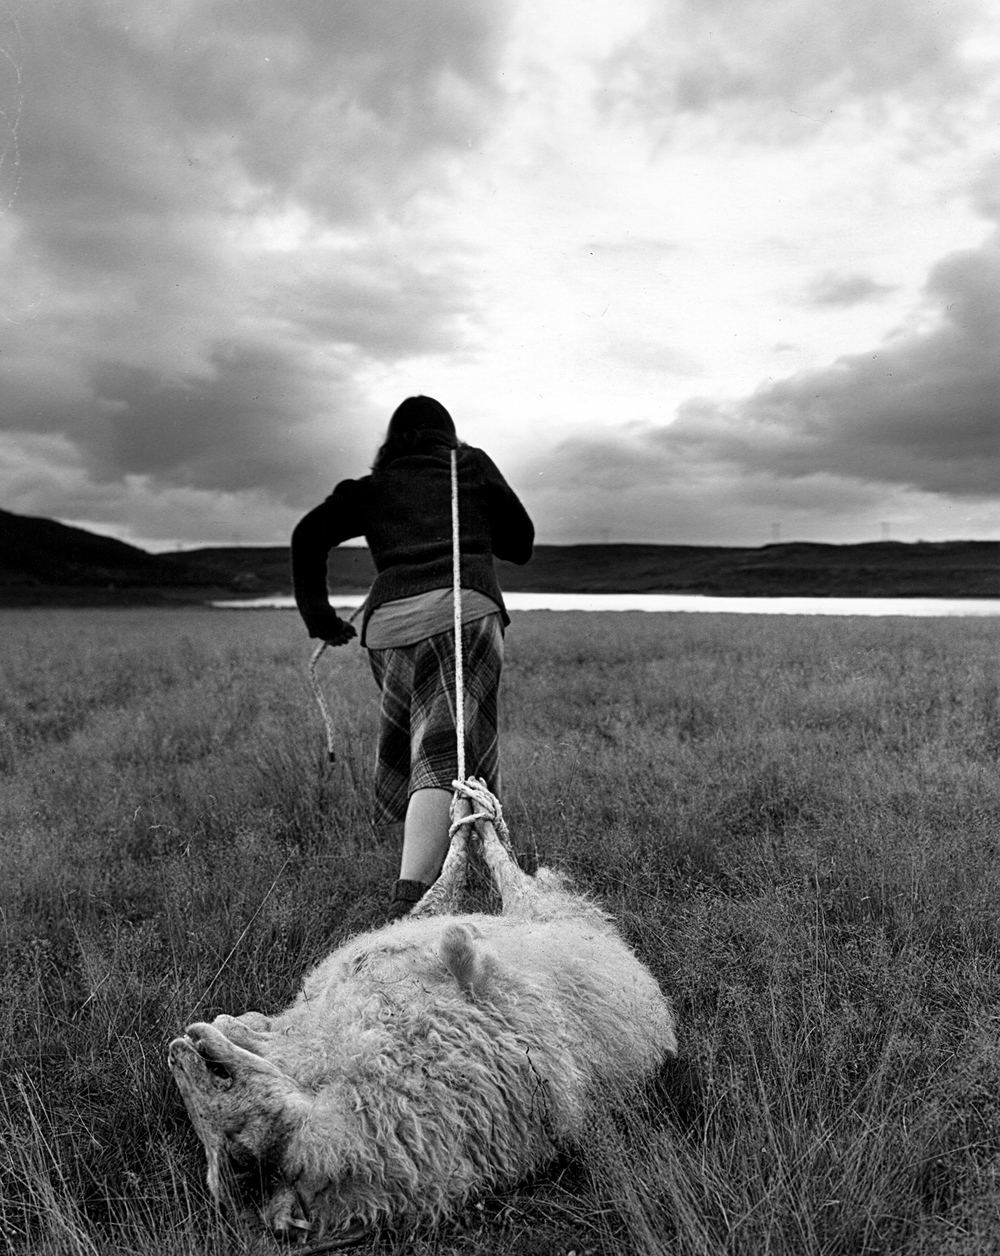 Self Portrait, Pulling a Sheep Carcass, 2014 /  Silver gelatin print / 7 x 9 in (17.8 x 22.9cm) / Edition of 10